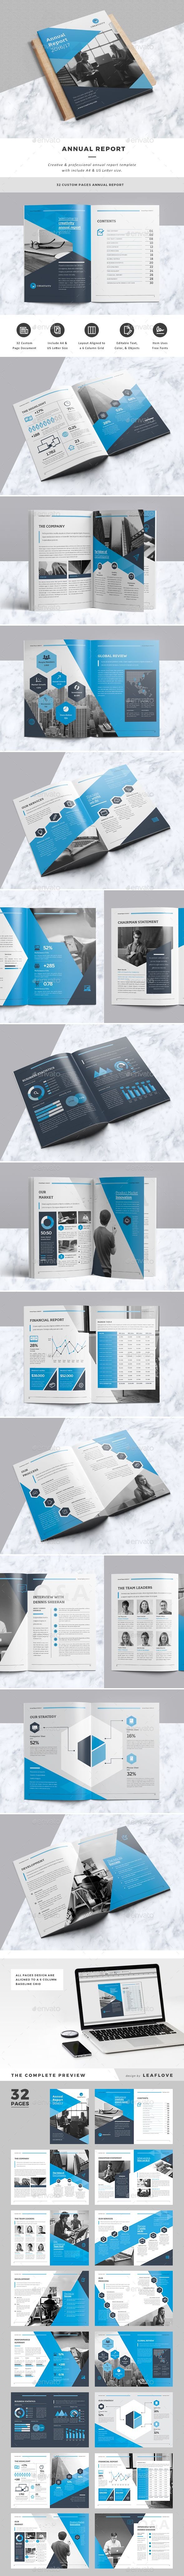 Annual Report Template InDesign INDD. Download here: https ...